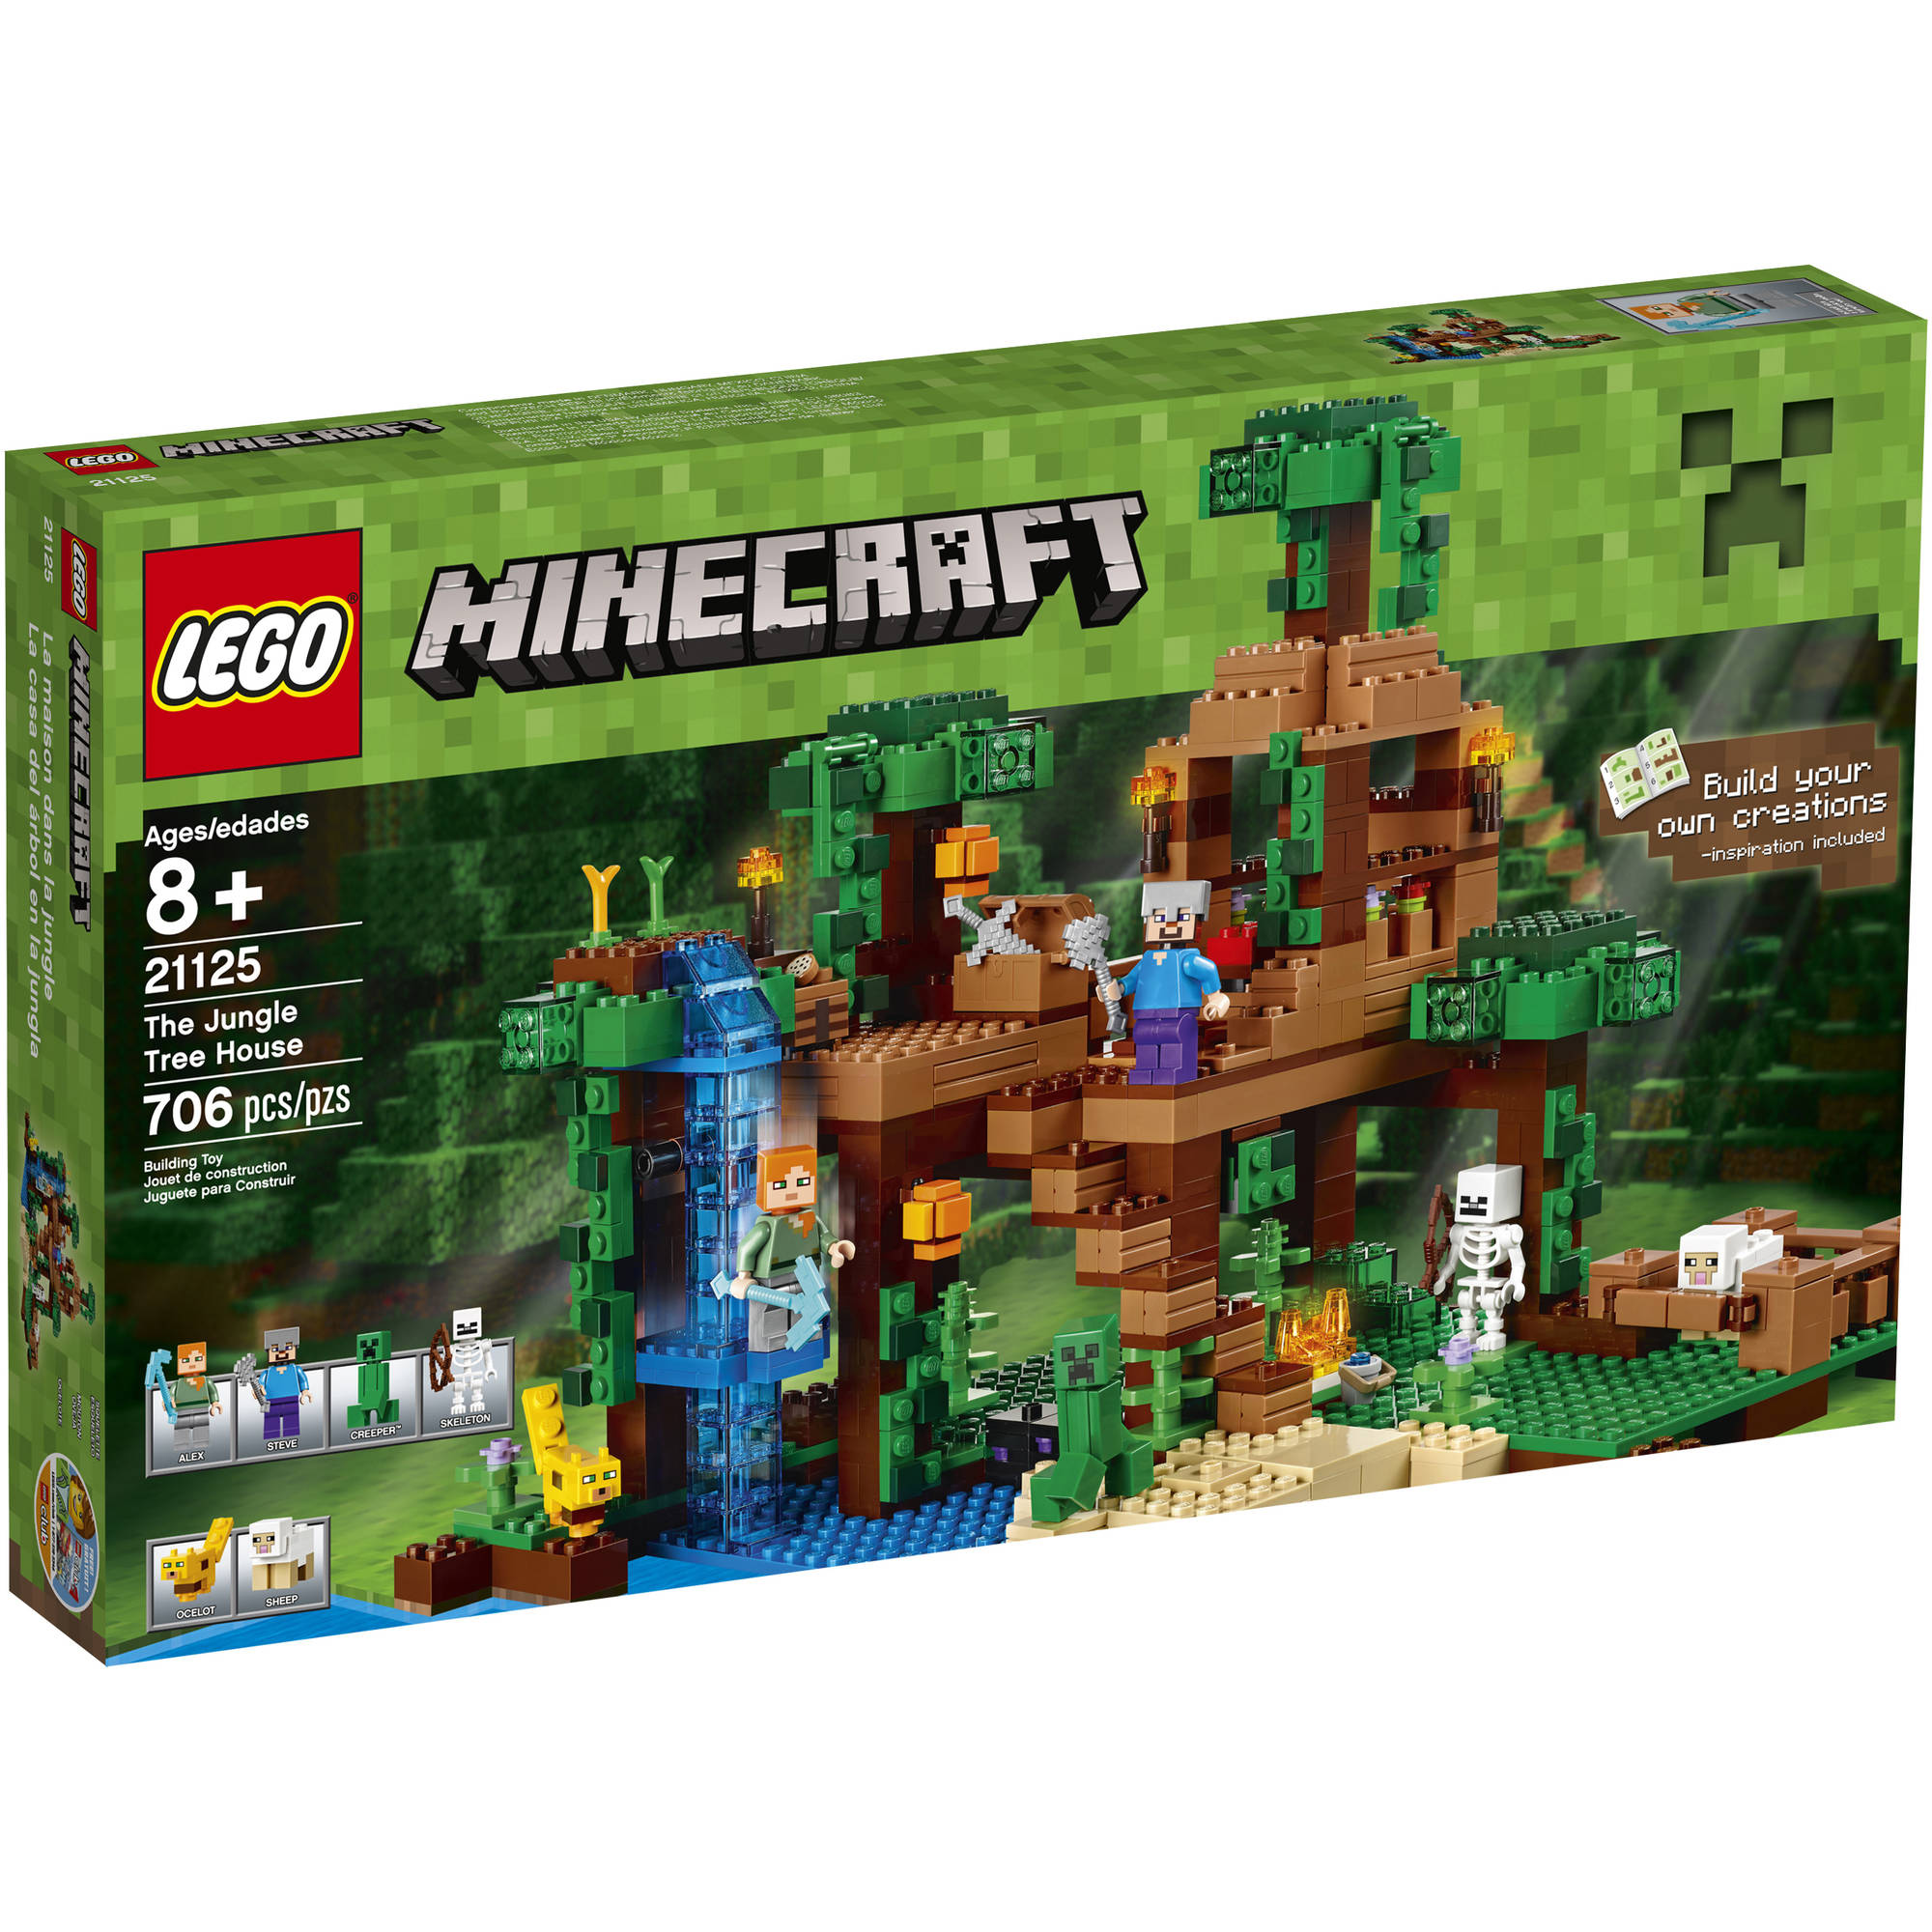 Lego Minecraft The Jungle Tree House 21125 by Diamond Select Toys